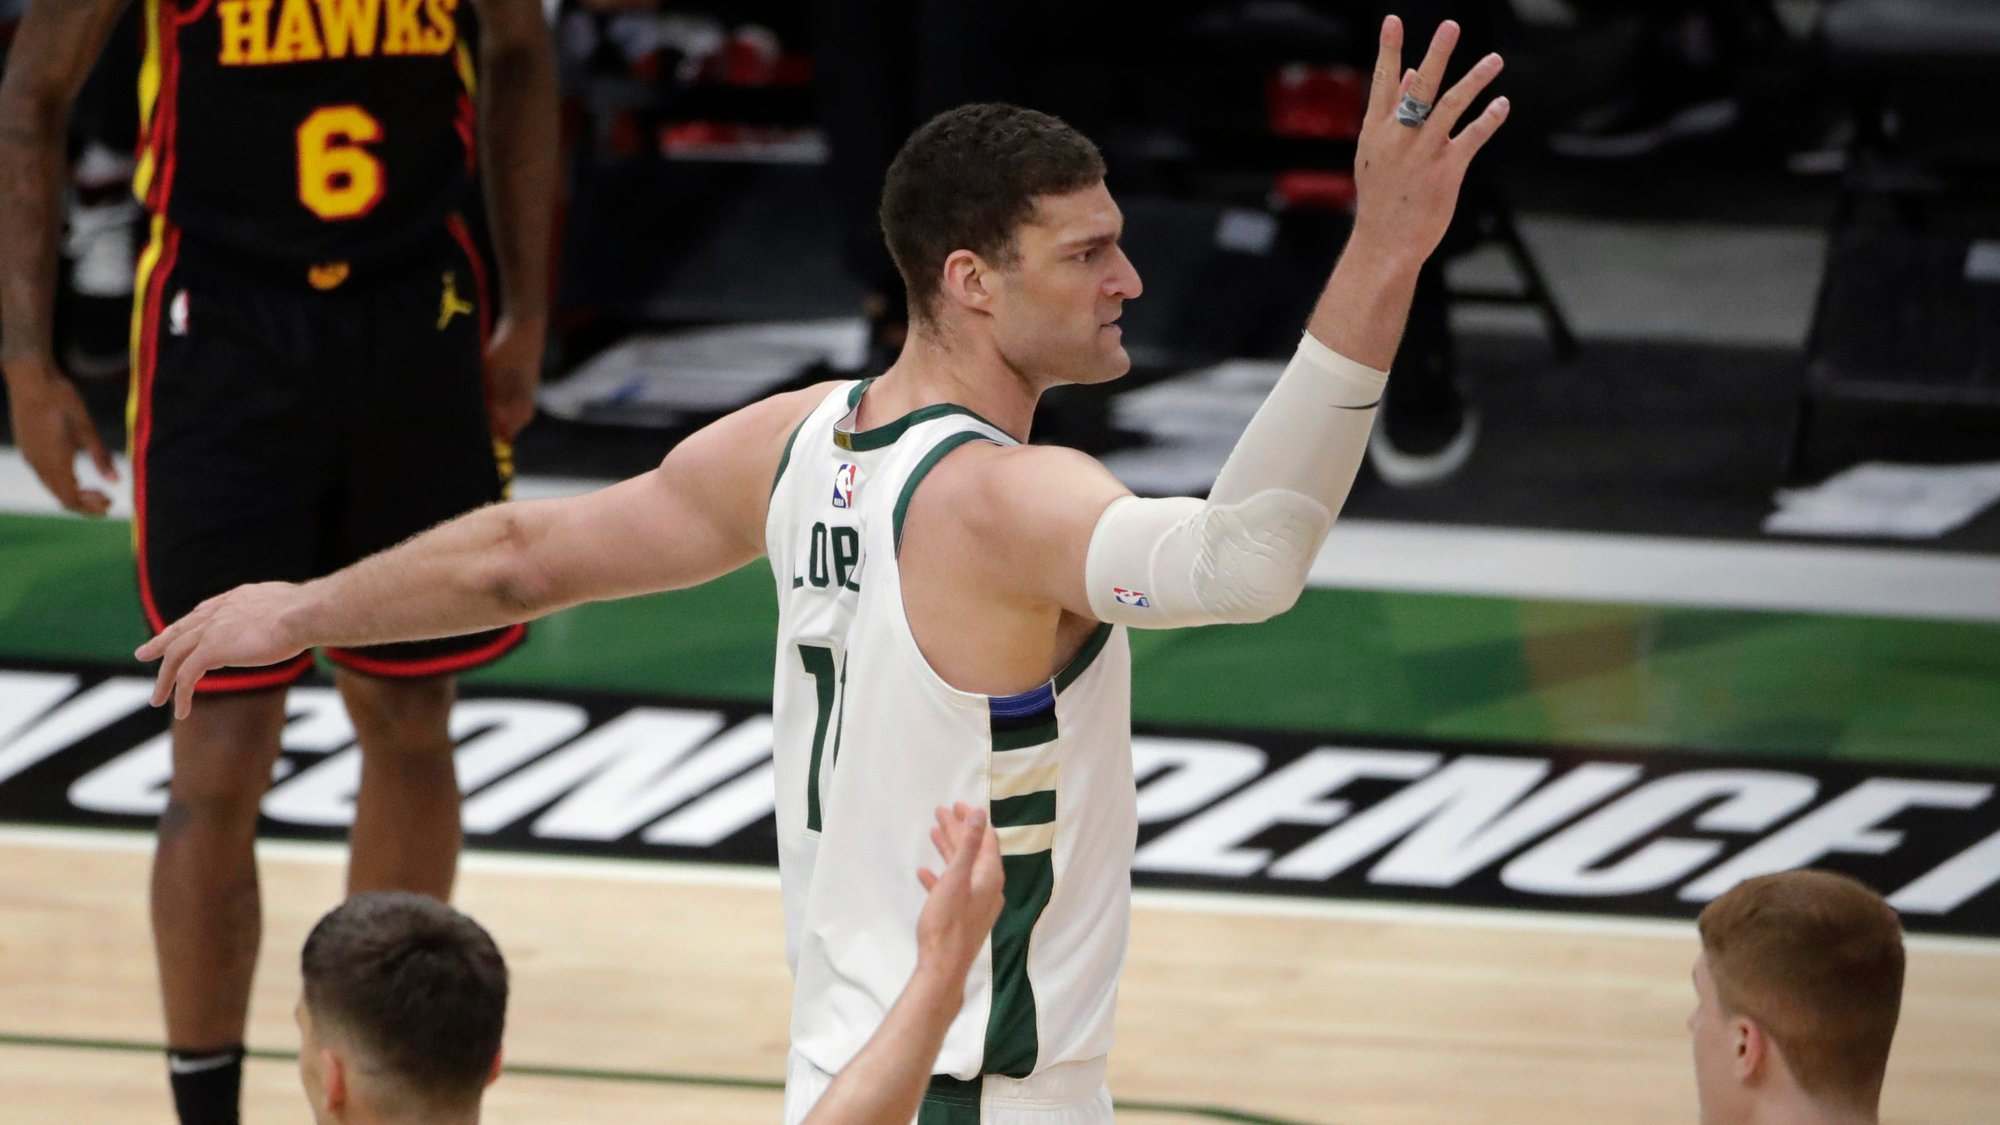 Bucks vs Hawks Game 6 Betting Preview: Will the Return of Trae or Giannis Swing the Series?